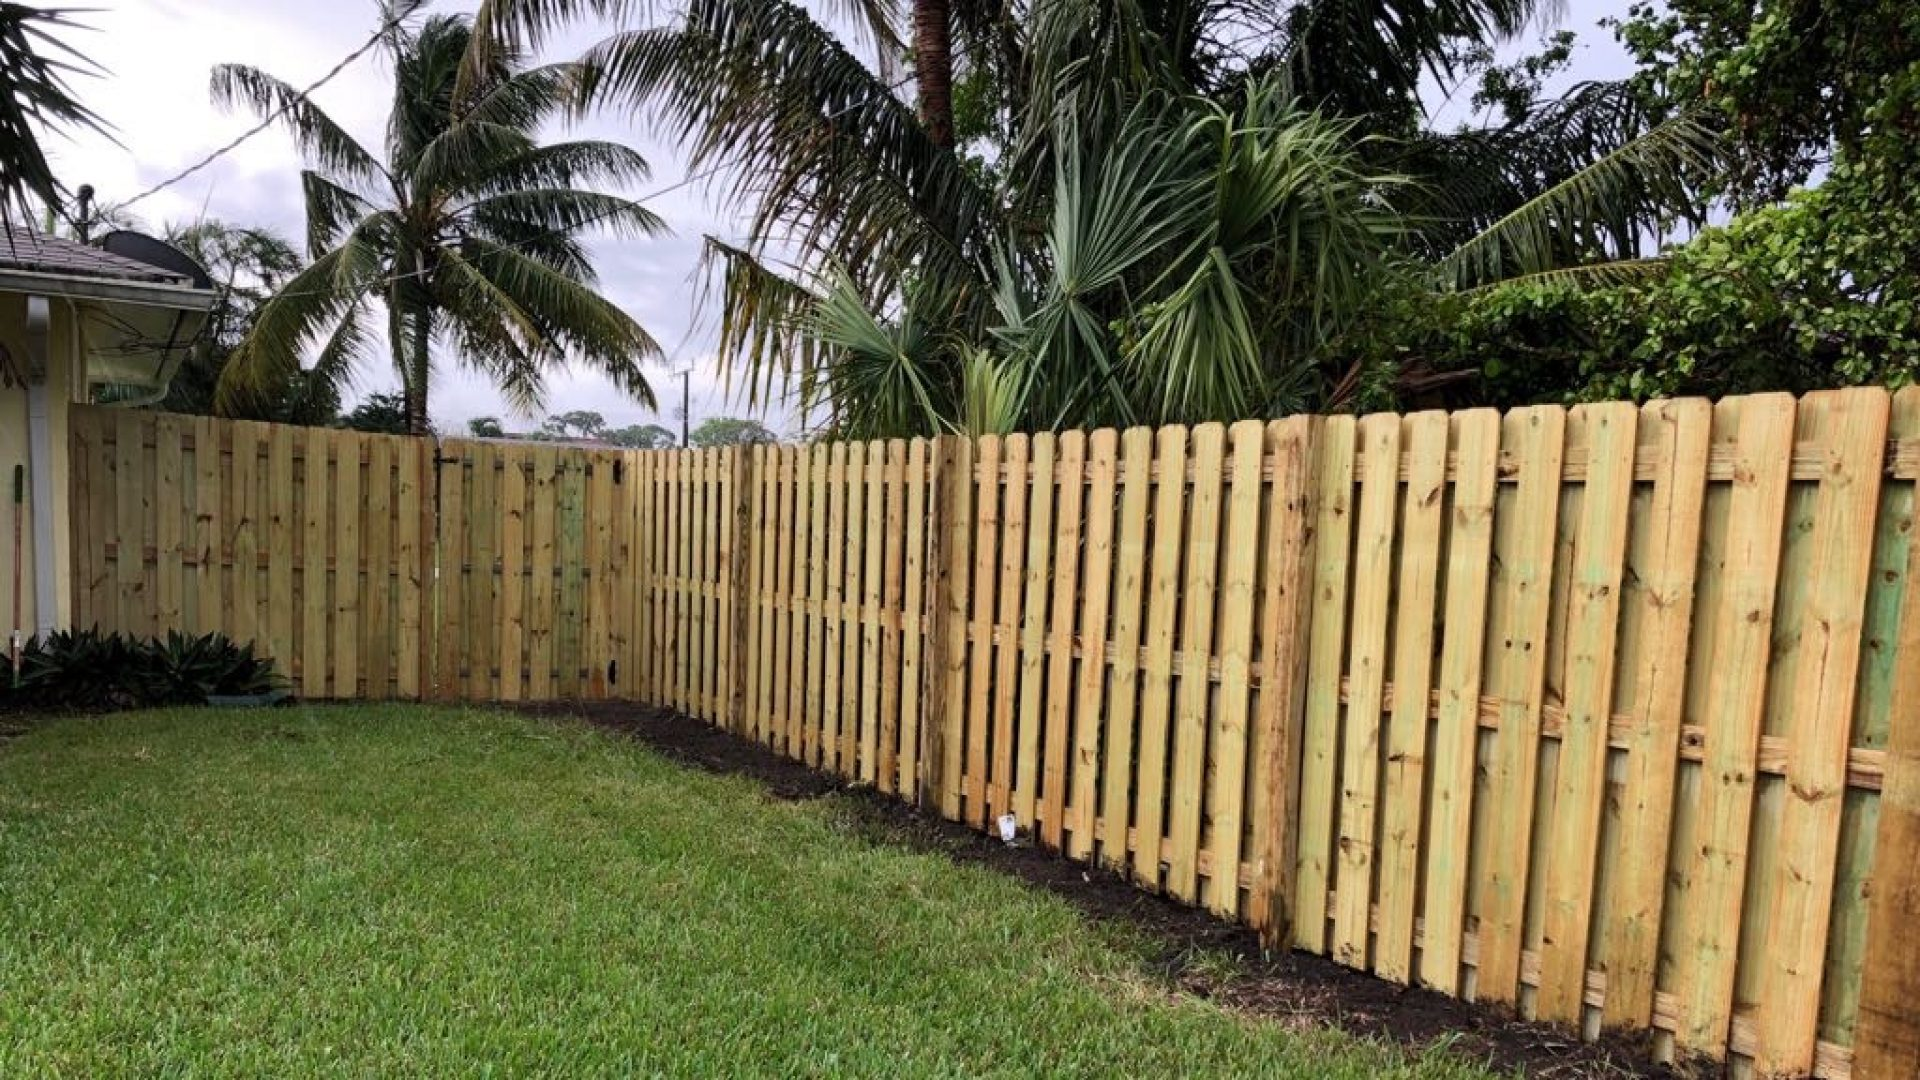 South Florida Contracting Services-residential & commercial home remodeling, fencing, concrete, epoxy coatings, roofing installation, repairs, EIFS, stucco-528-We do residential & commercial contractor work for home remodeling, fencing, concrete services, epoxy coatings, roofing installation, repairs, EIFS, stucco, water heater installation, and any construction related items we can do.